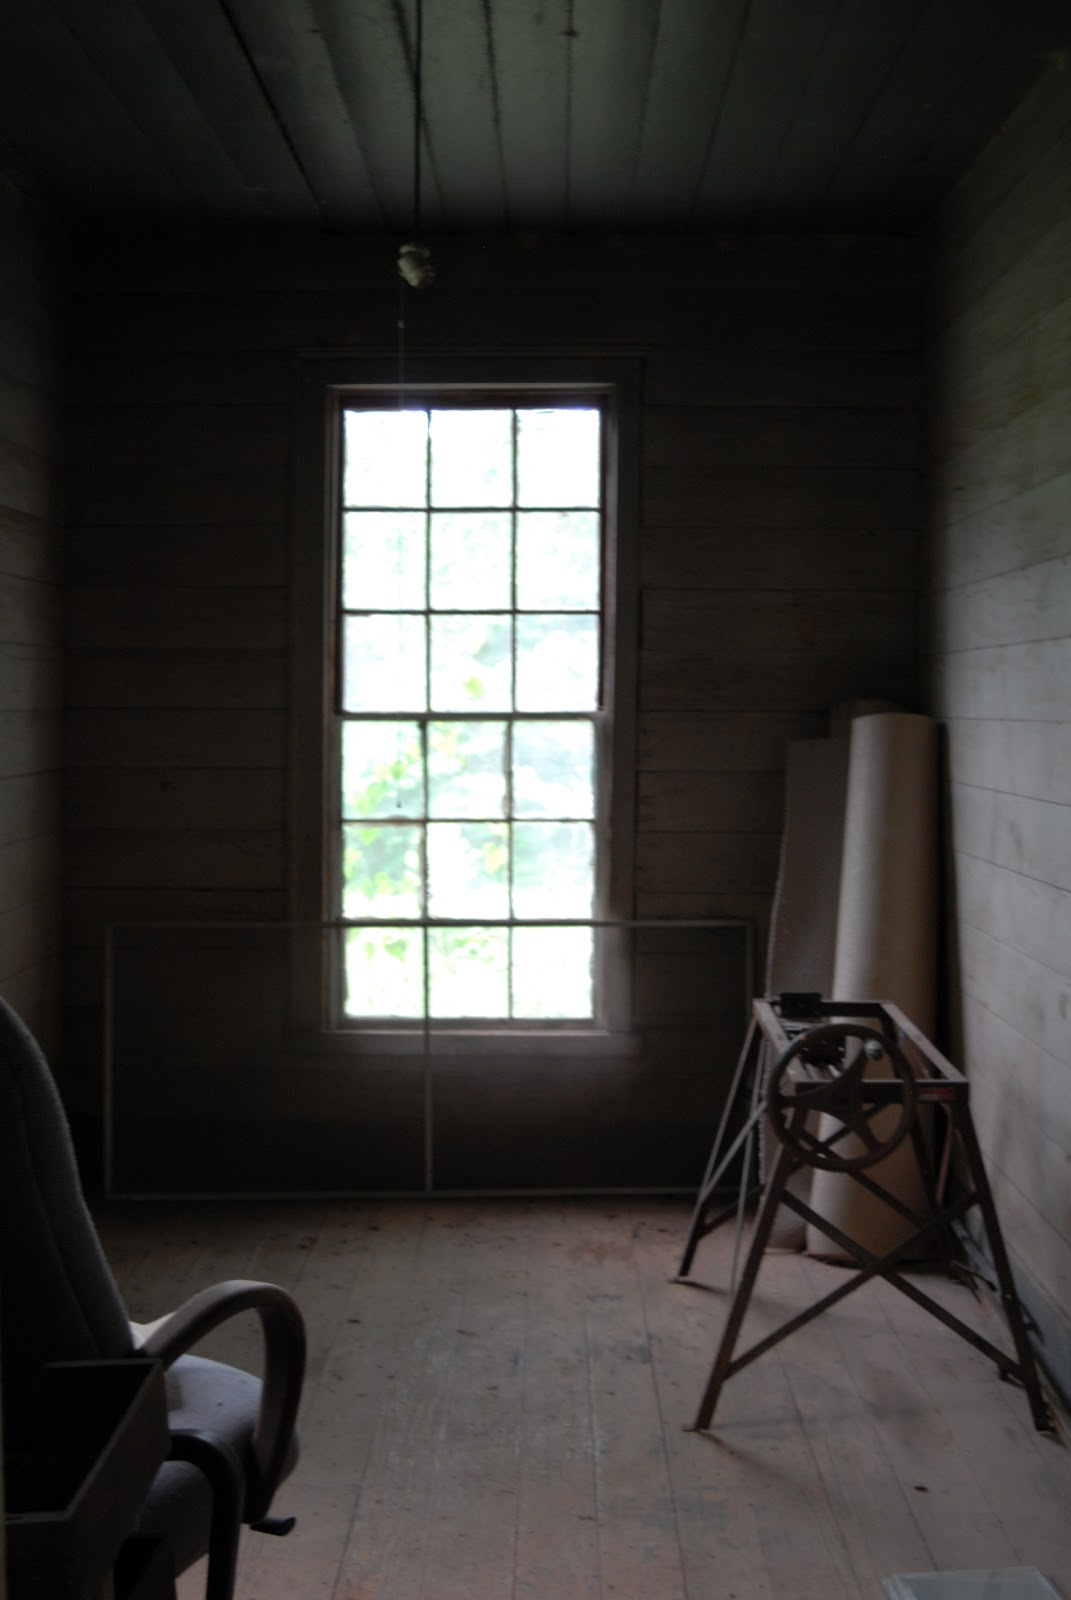 Dust Covered Room Through a Dust-covered